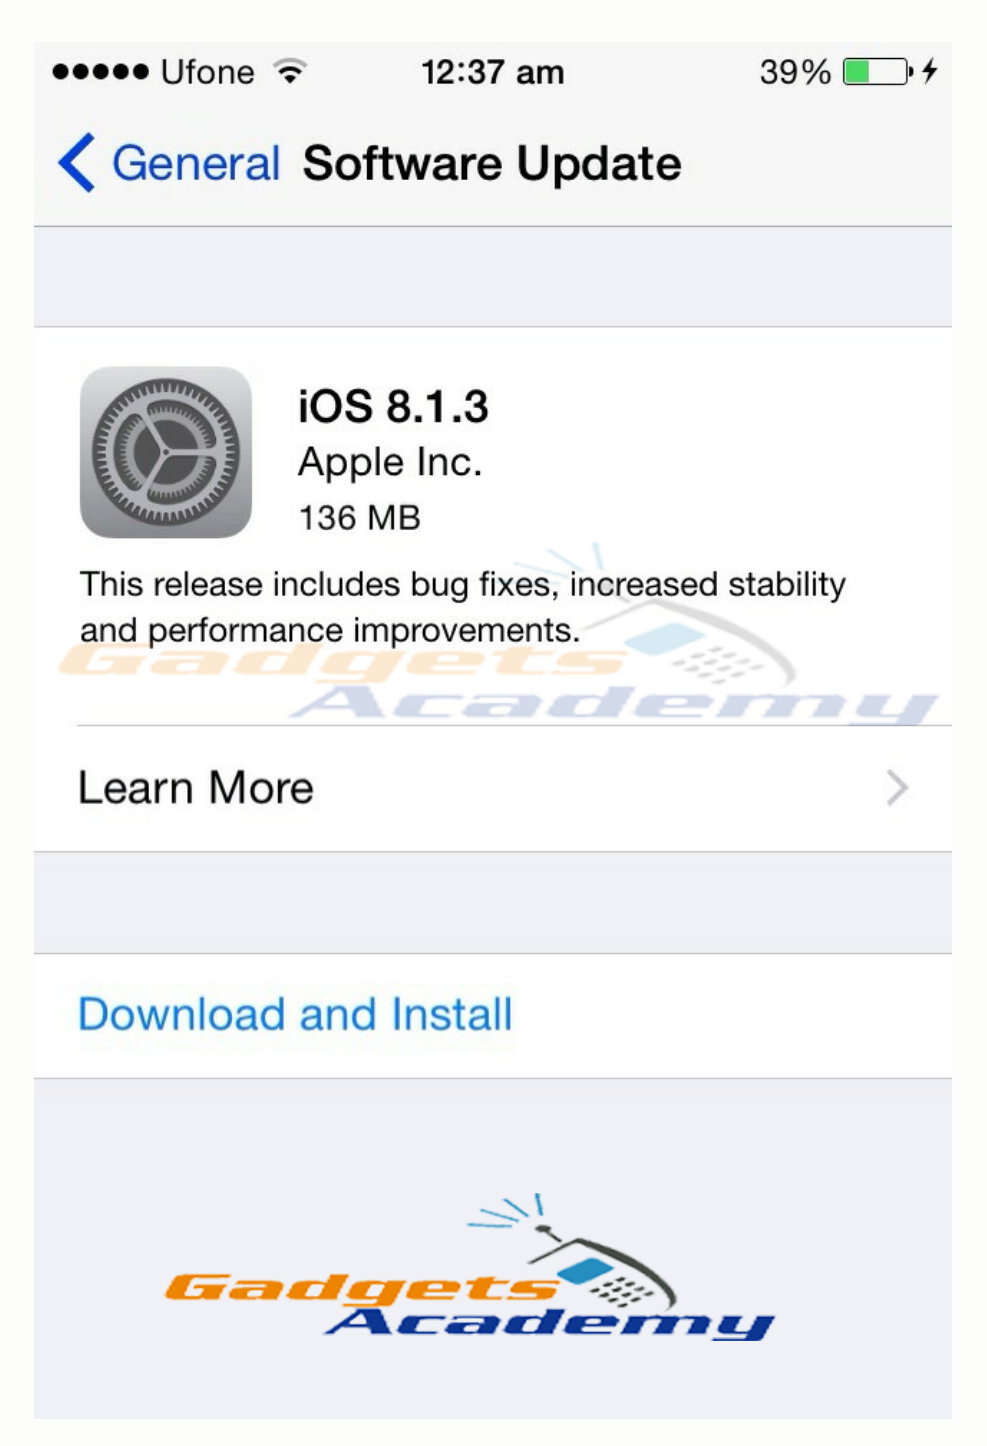 Download iOS 8.1.3 Firmware IPSW for iPhone, iPad, iPod